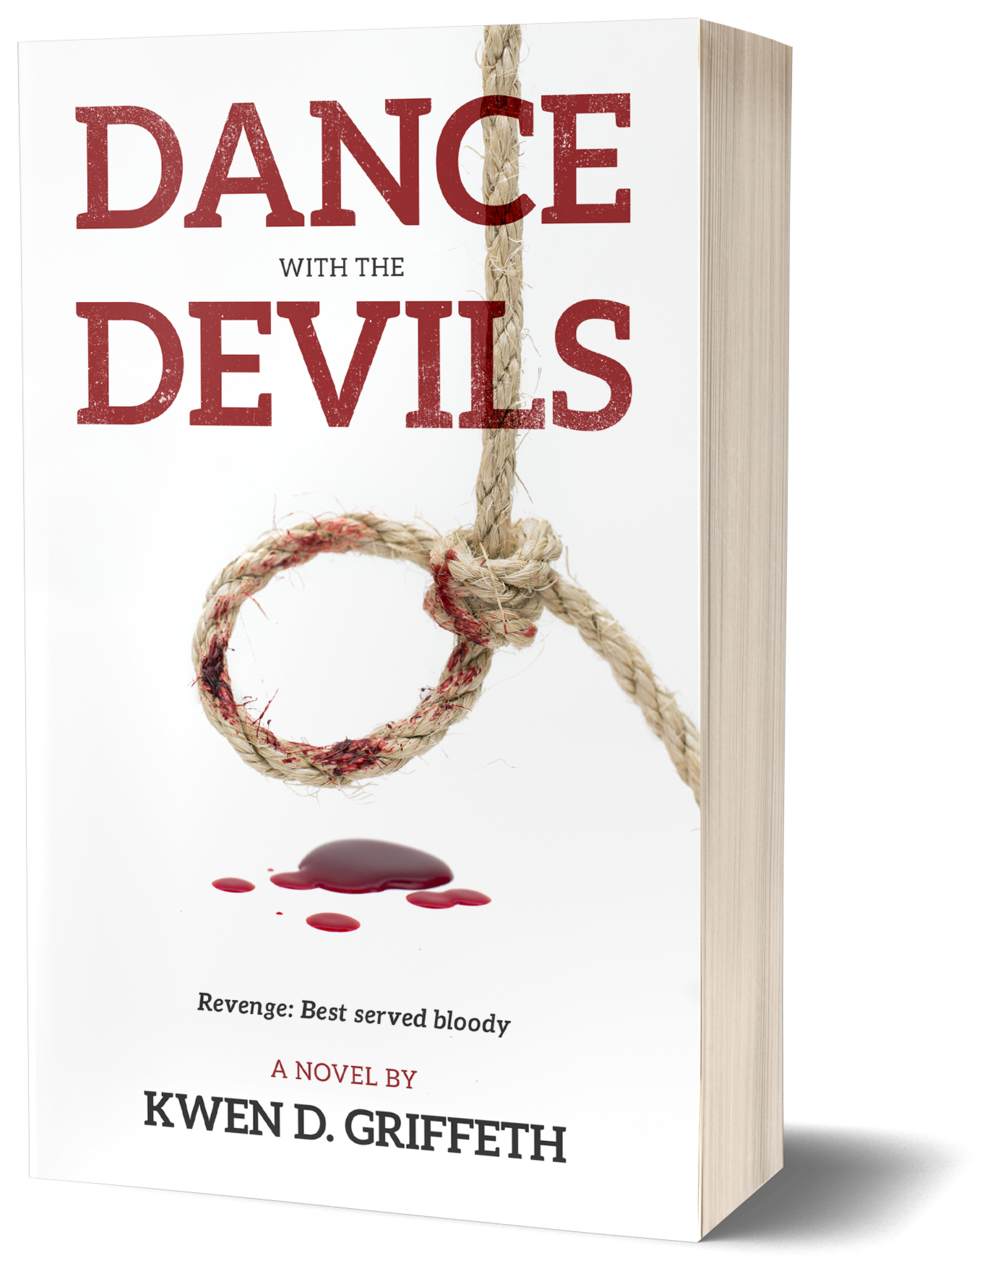 dance with devils book mockup.png